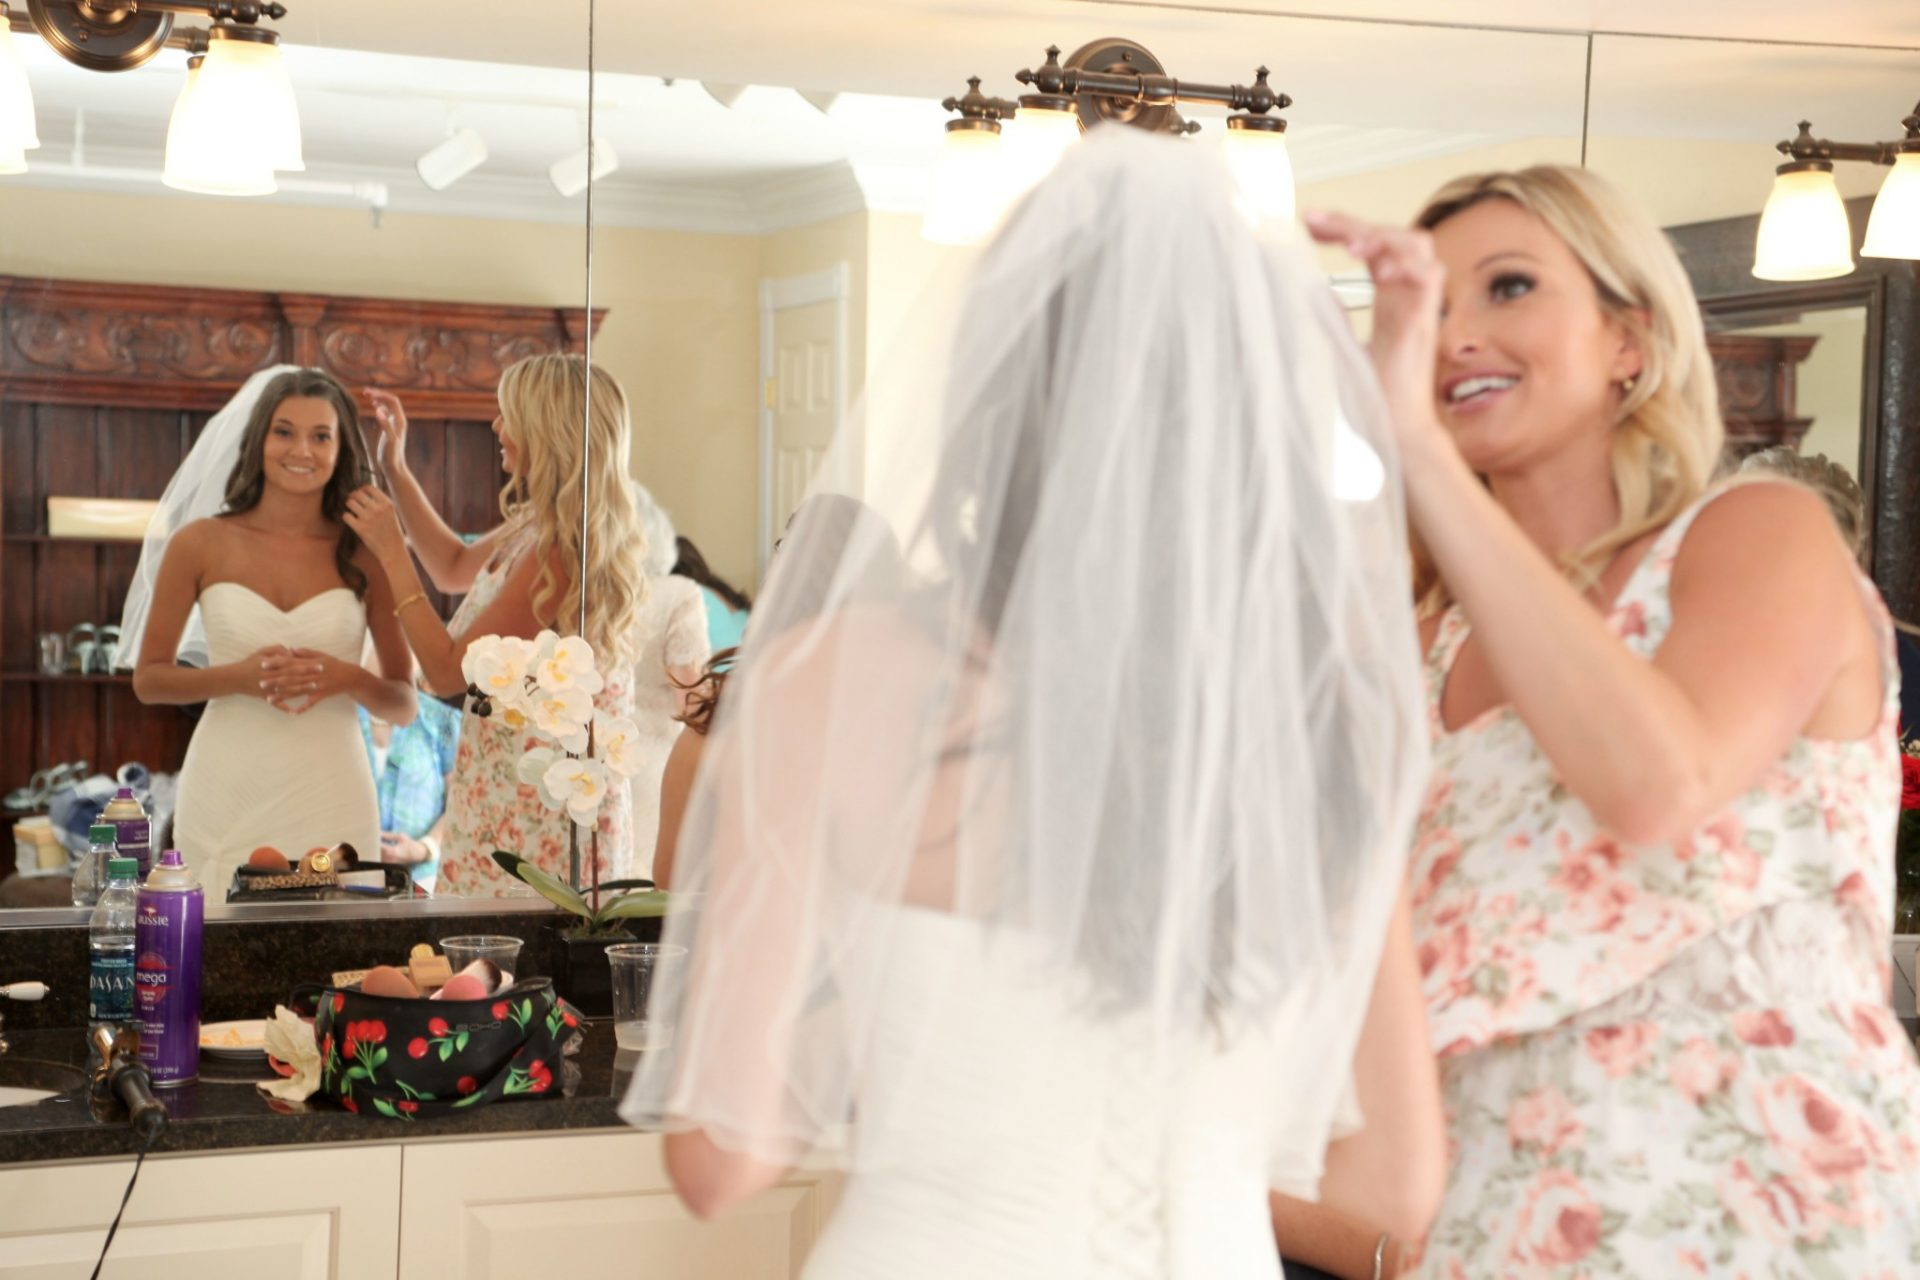 Bridal party prepares for wedding in the brides room